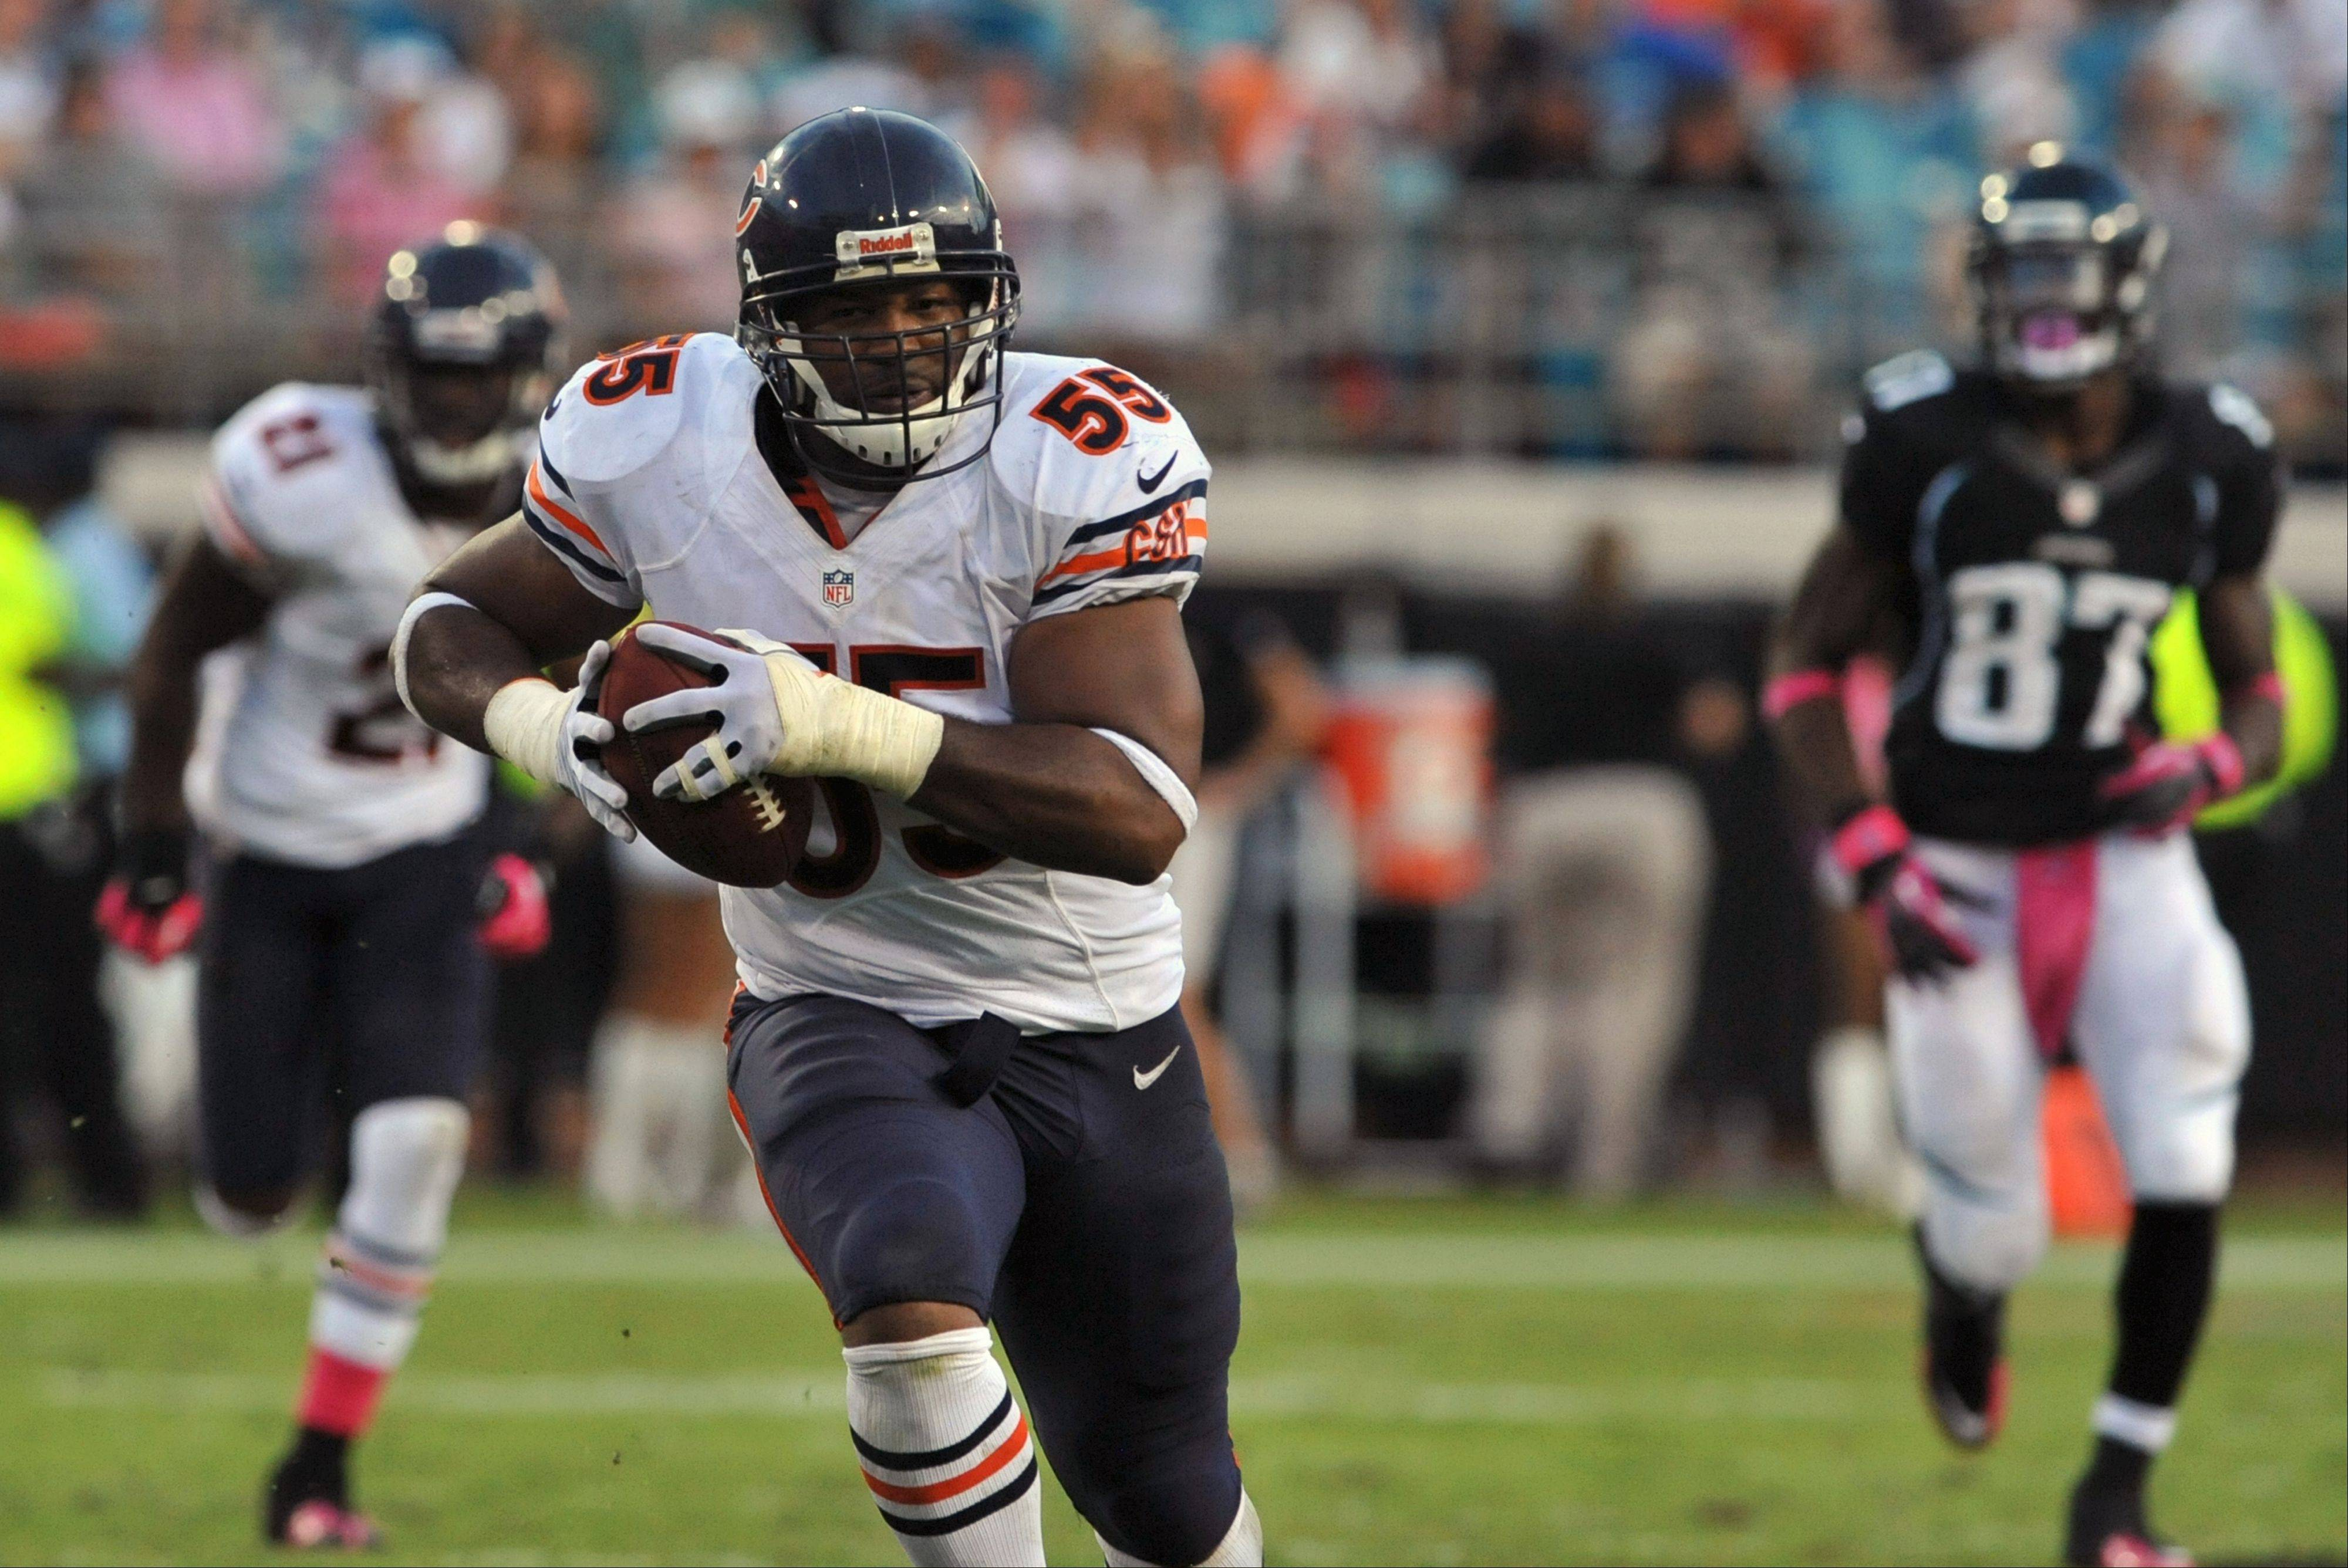 Bears linebacker Lance Briggs runs back an interception for a touchdown during Sunday�s victory at Jacksonville. The Bears have scored 5 touchdowns on interception returns during their three-game winning streak.